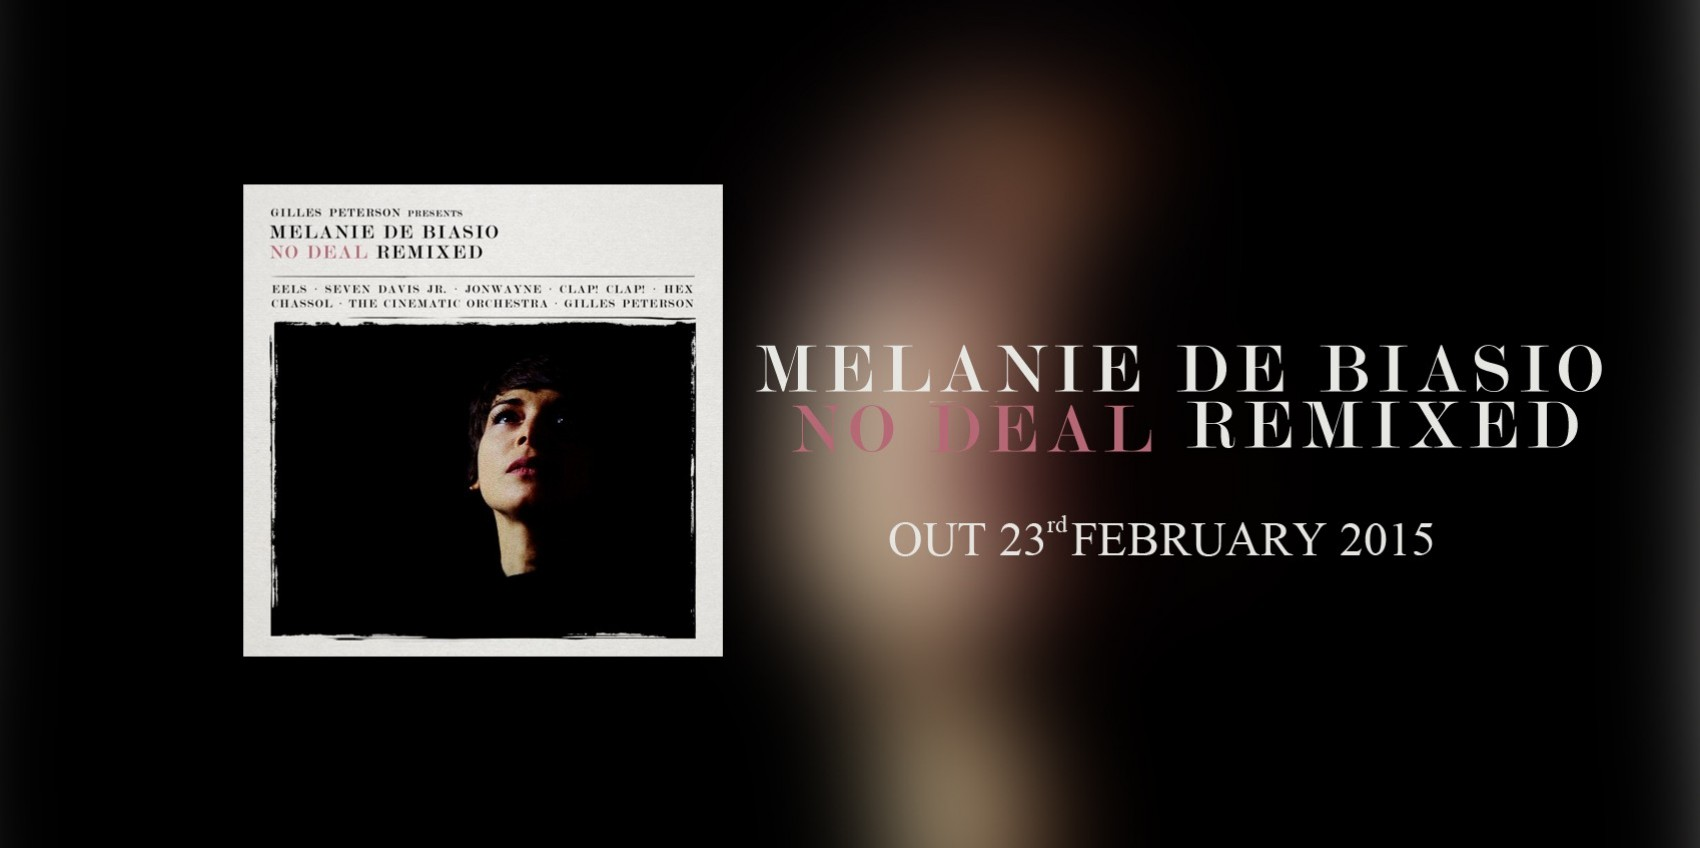 Melanie De Biasio - No Deal Remixed